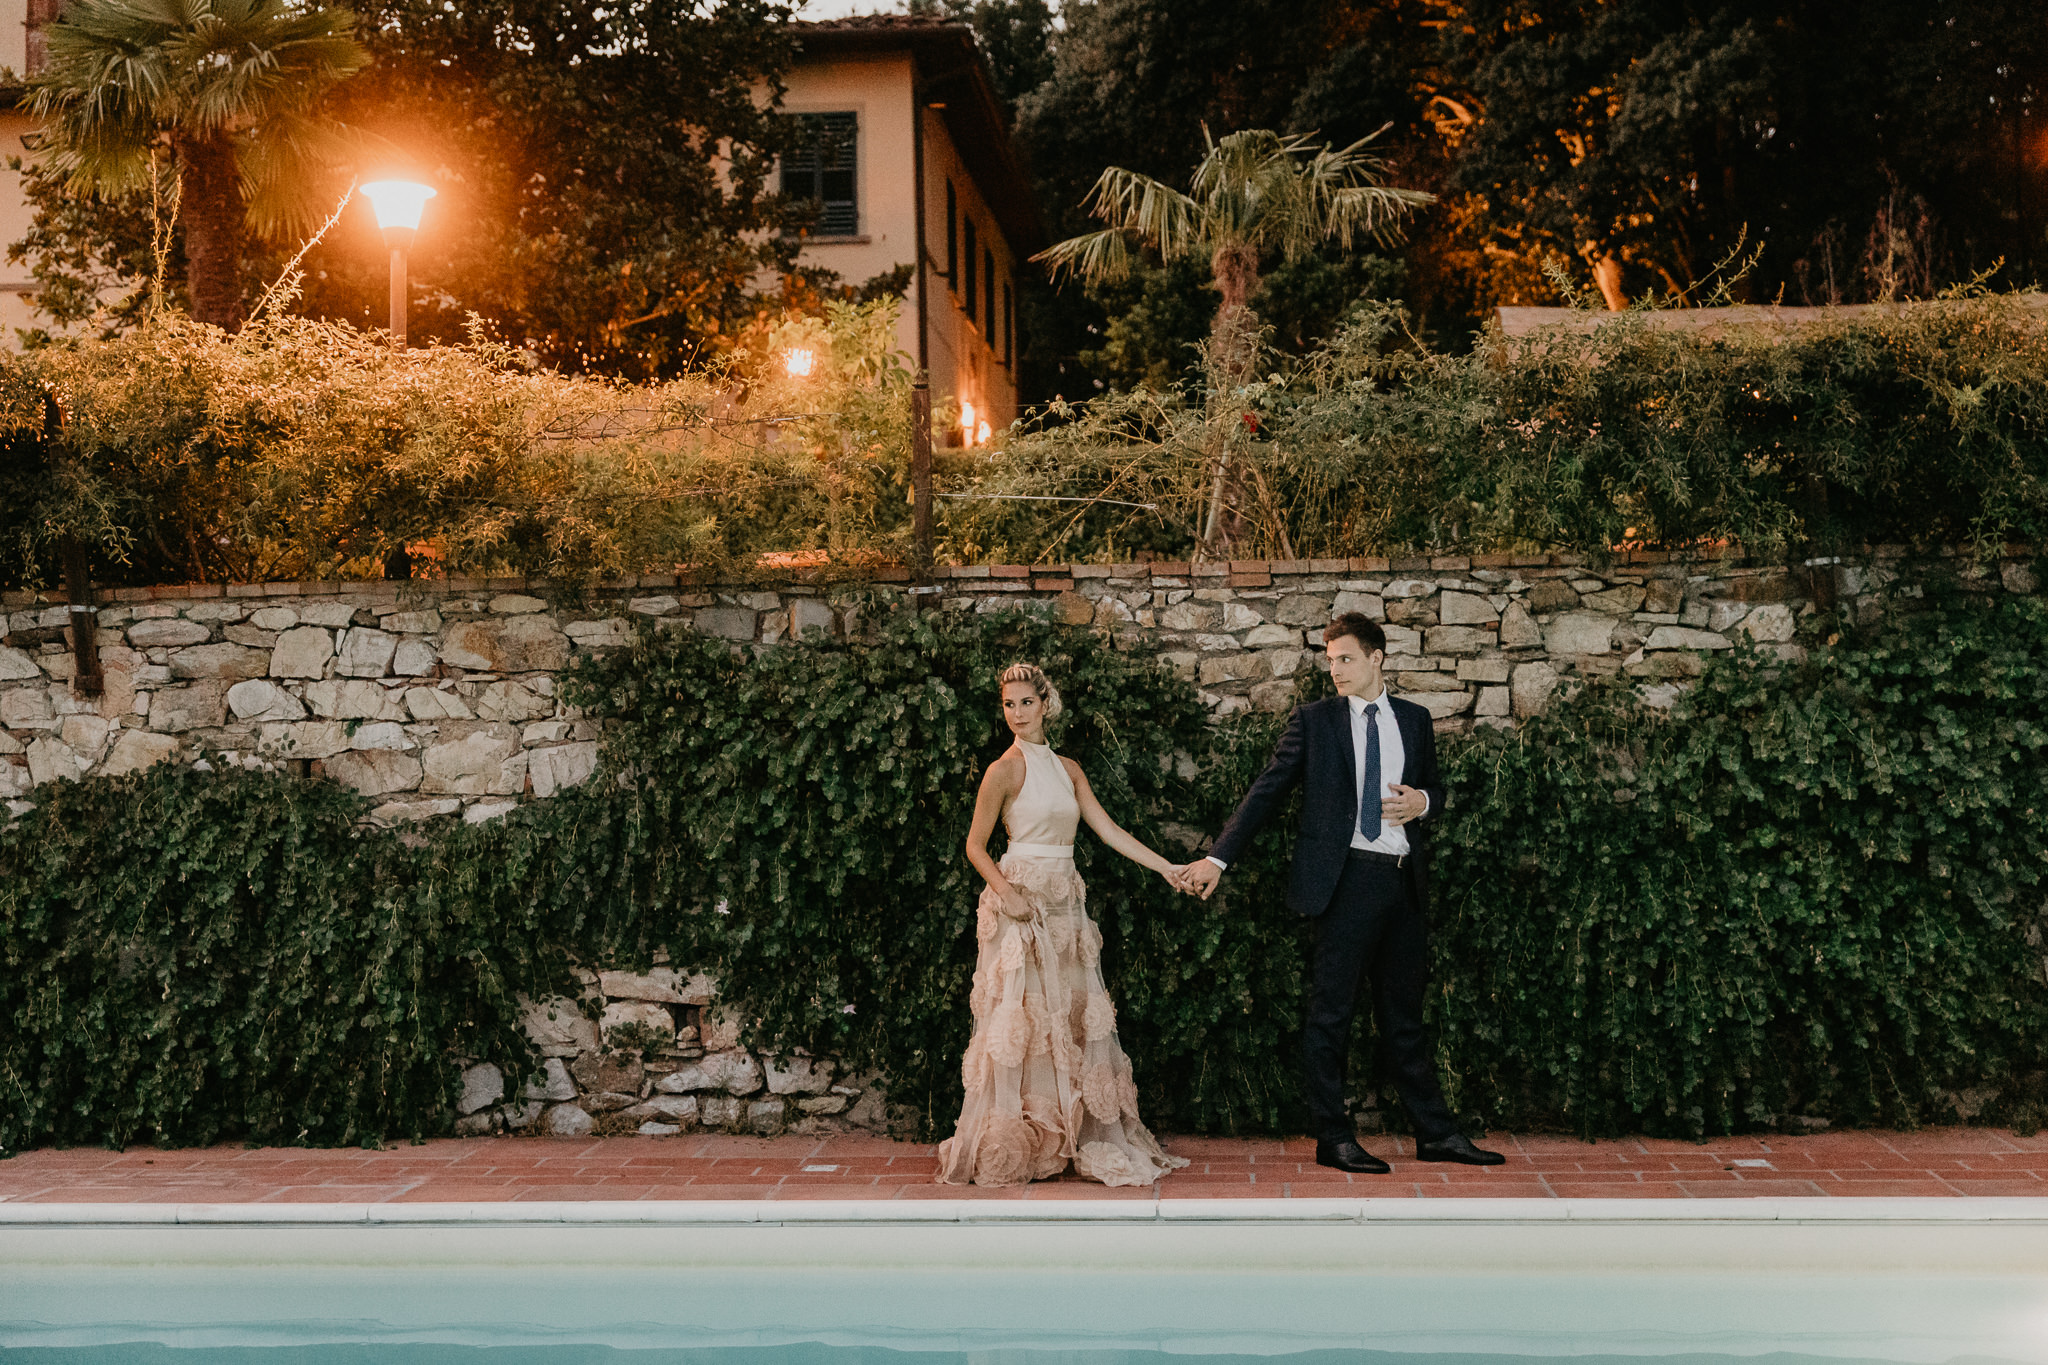 Tuscany- Wedding Photographer - Wedding photos Italy - Florence- Pat Cori Photography.jpg